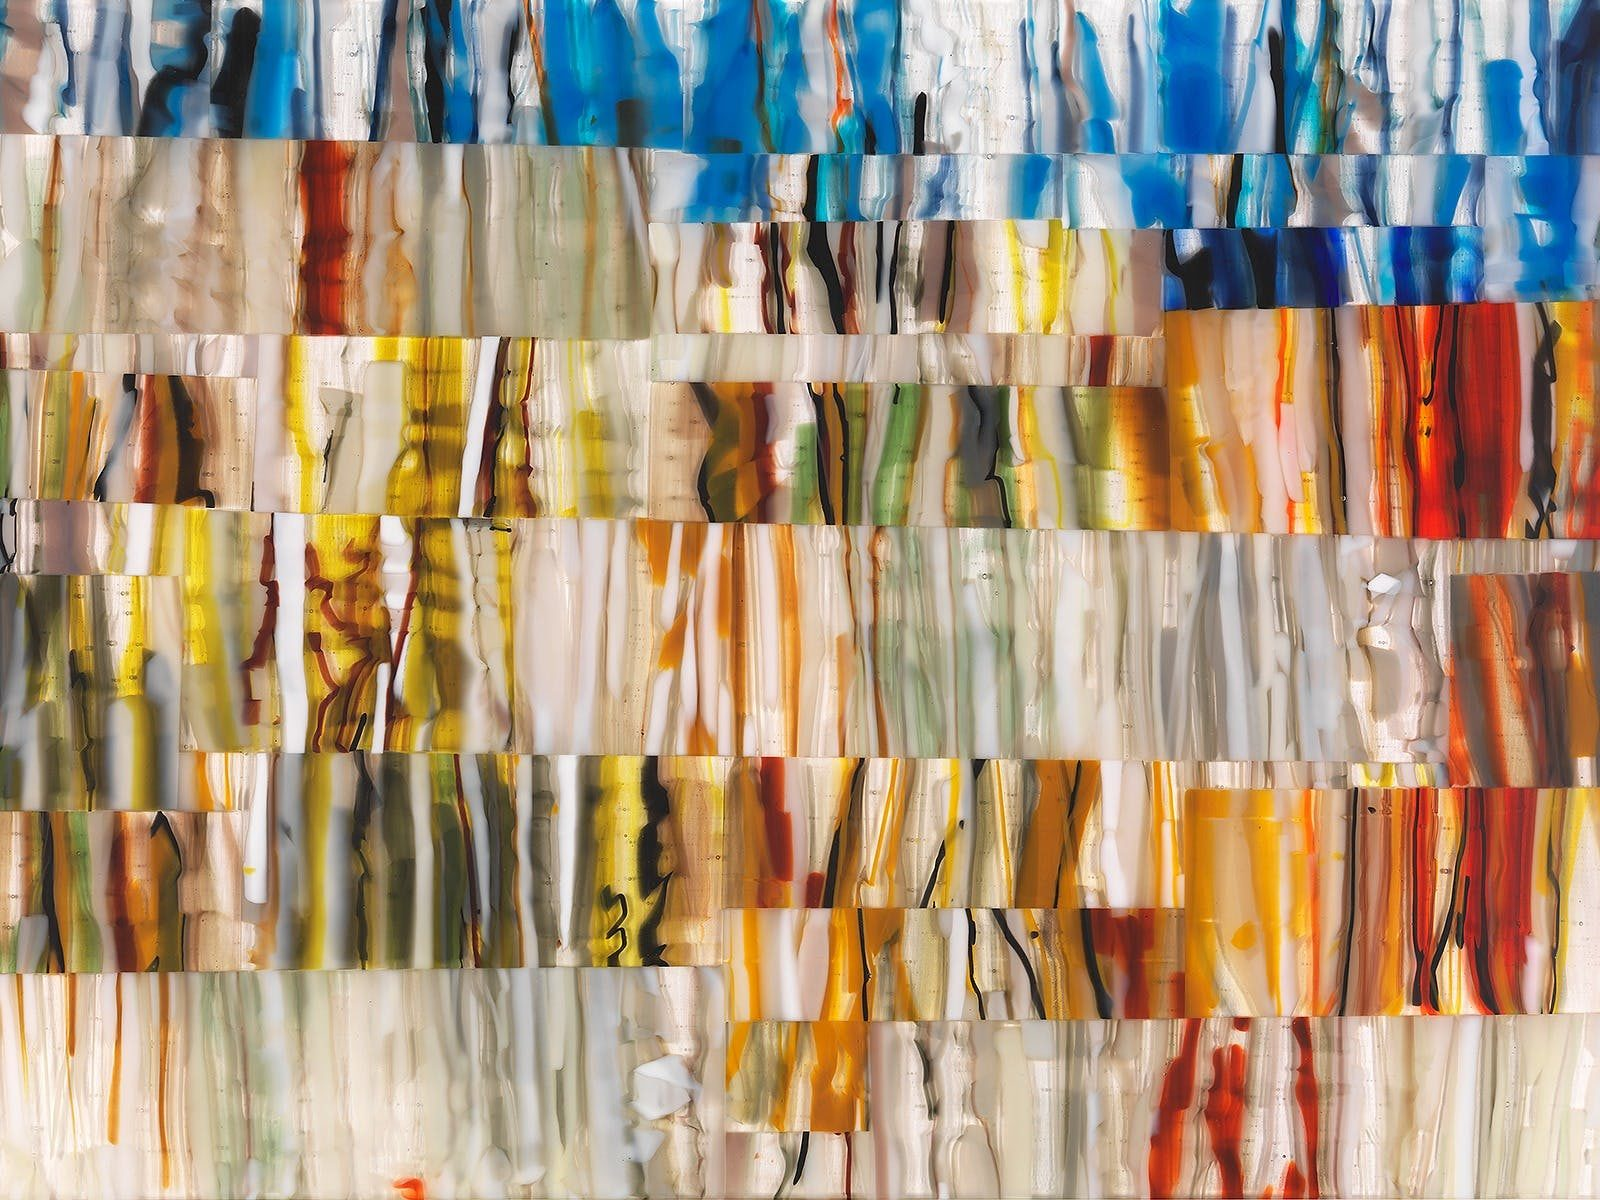 Hannah Gason, Untitled (after Boyd), 2016, Parliament House Art Collection, DPS, Canberra ACT